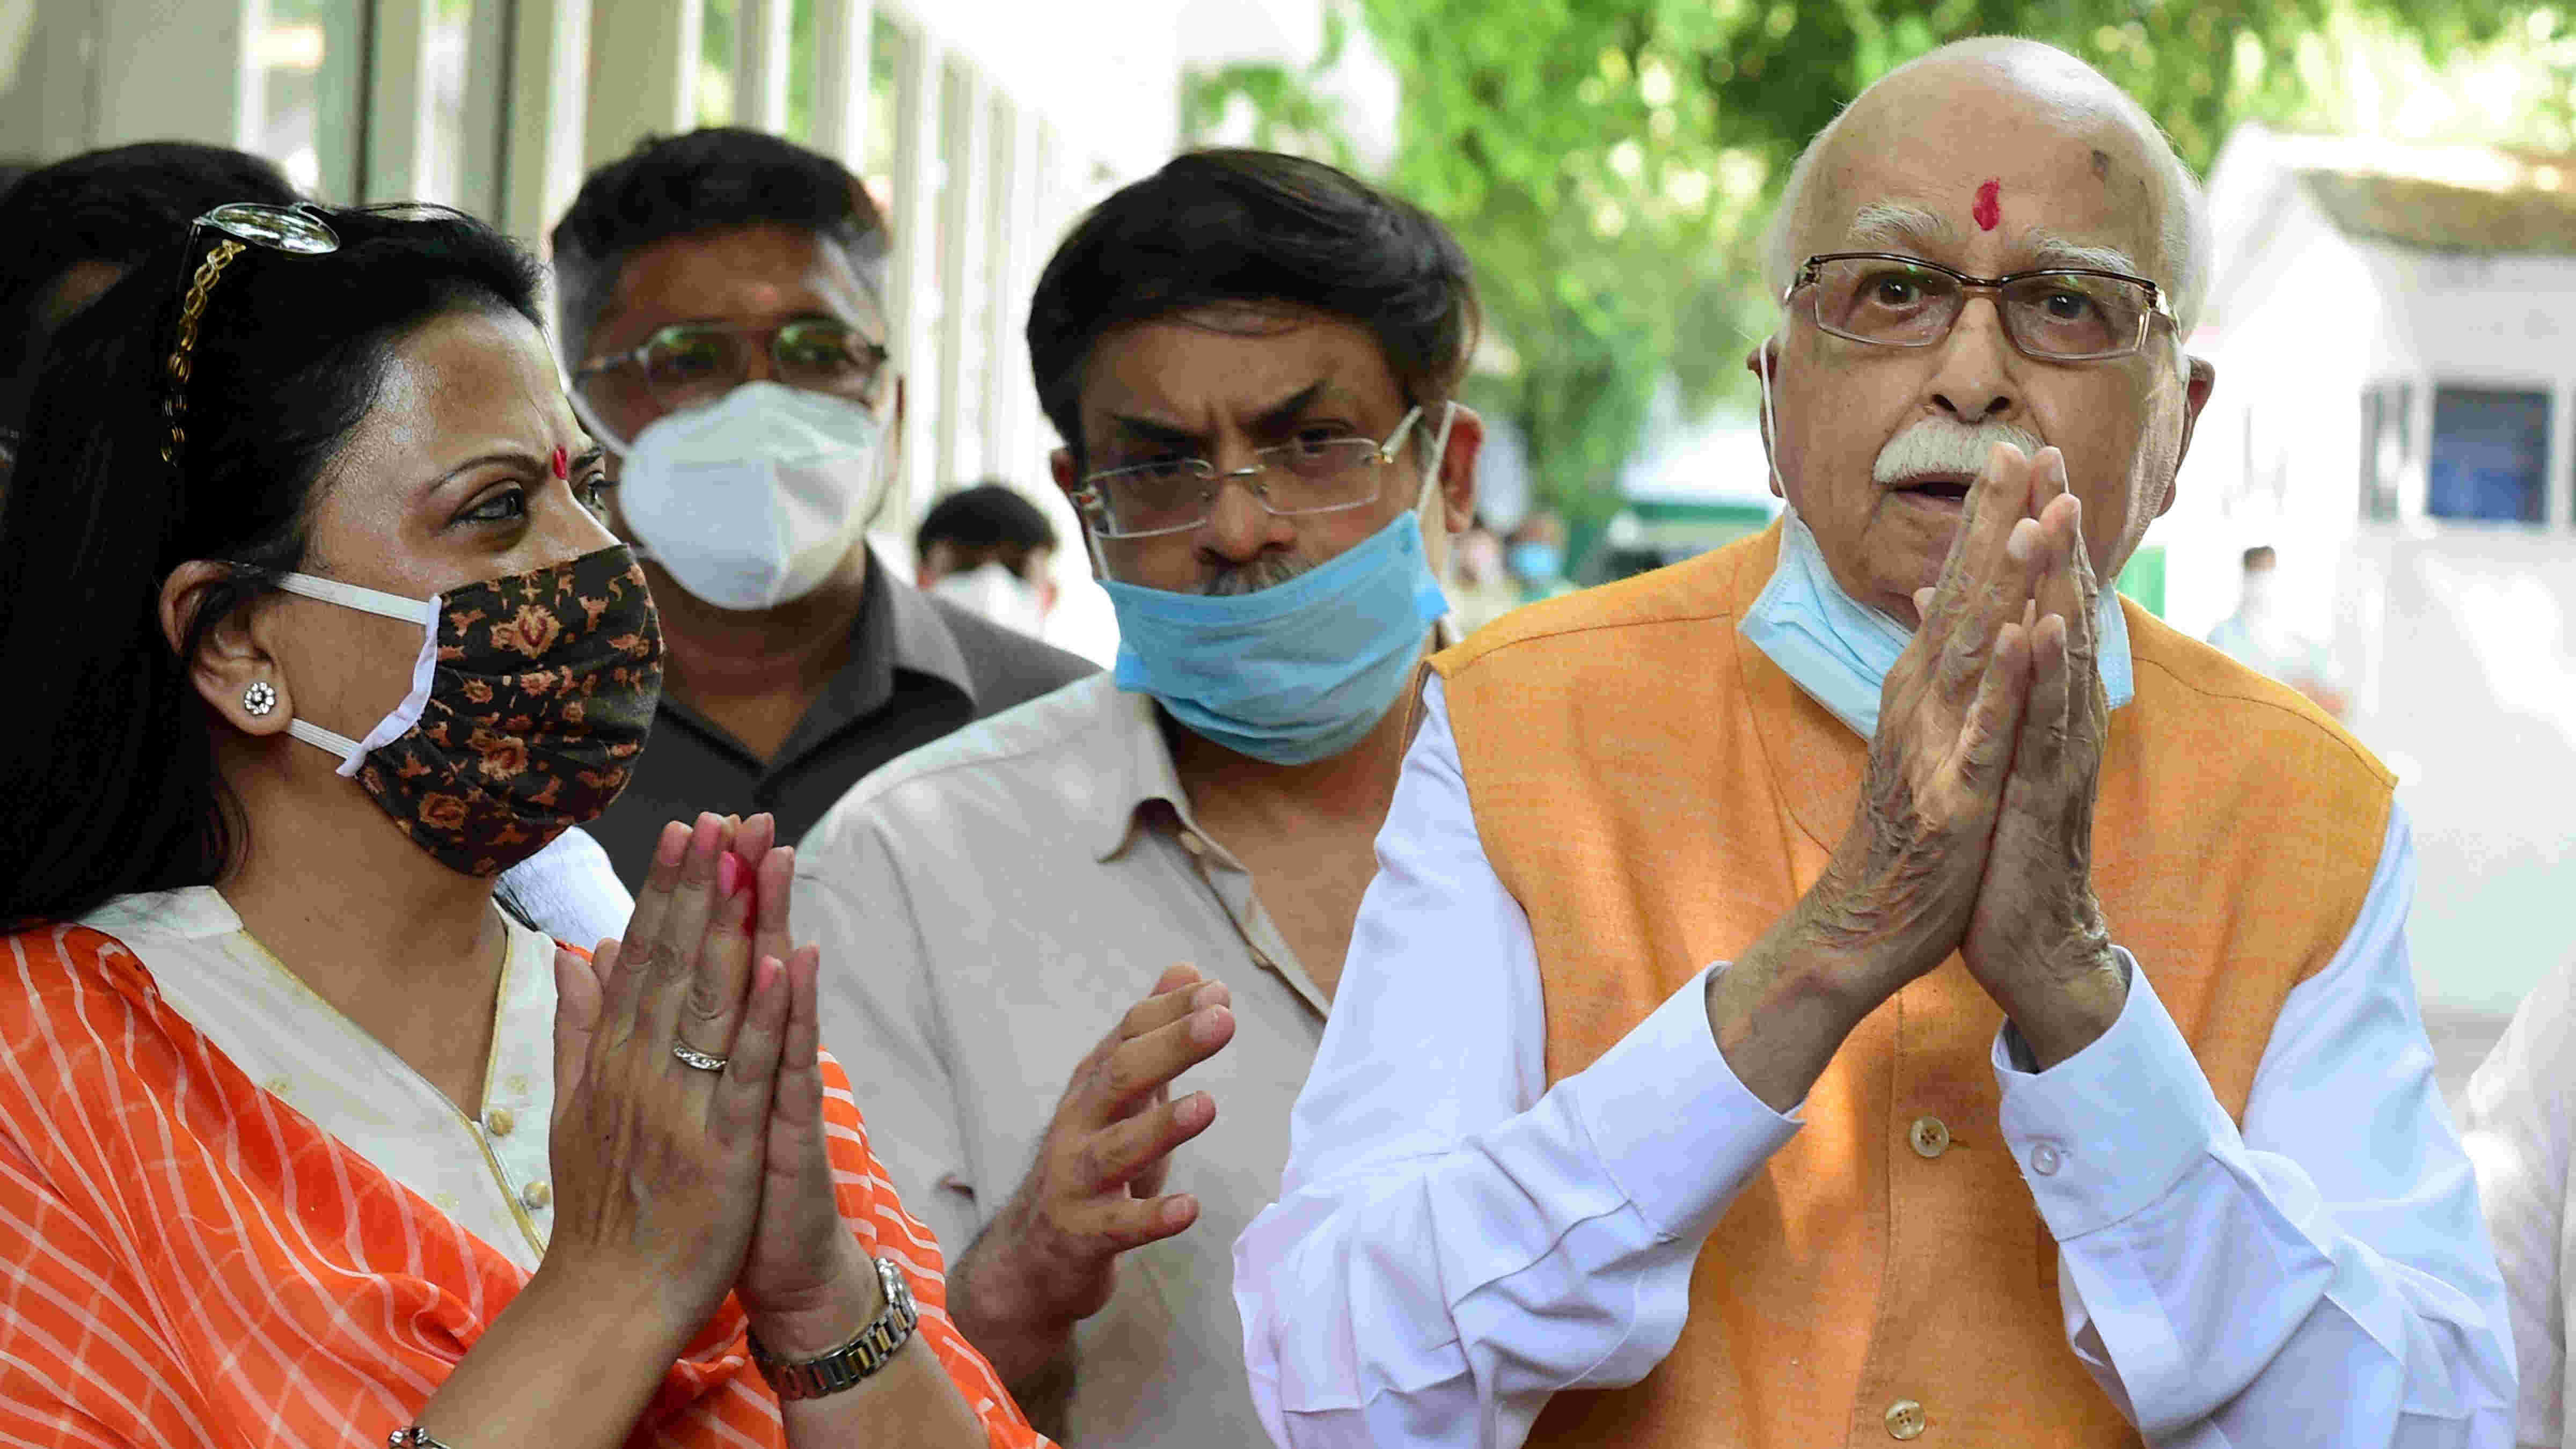 Senior BJP leader LK Advani, one the accused in Babri mosque demolition case, along with his daughter Pratibha Advani (L) and son Jayant Advani (C) after the verdict by the special CBI court, outside his residence in New Delhi, Wednesday, Sept. 30, 2020.